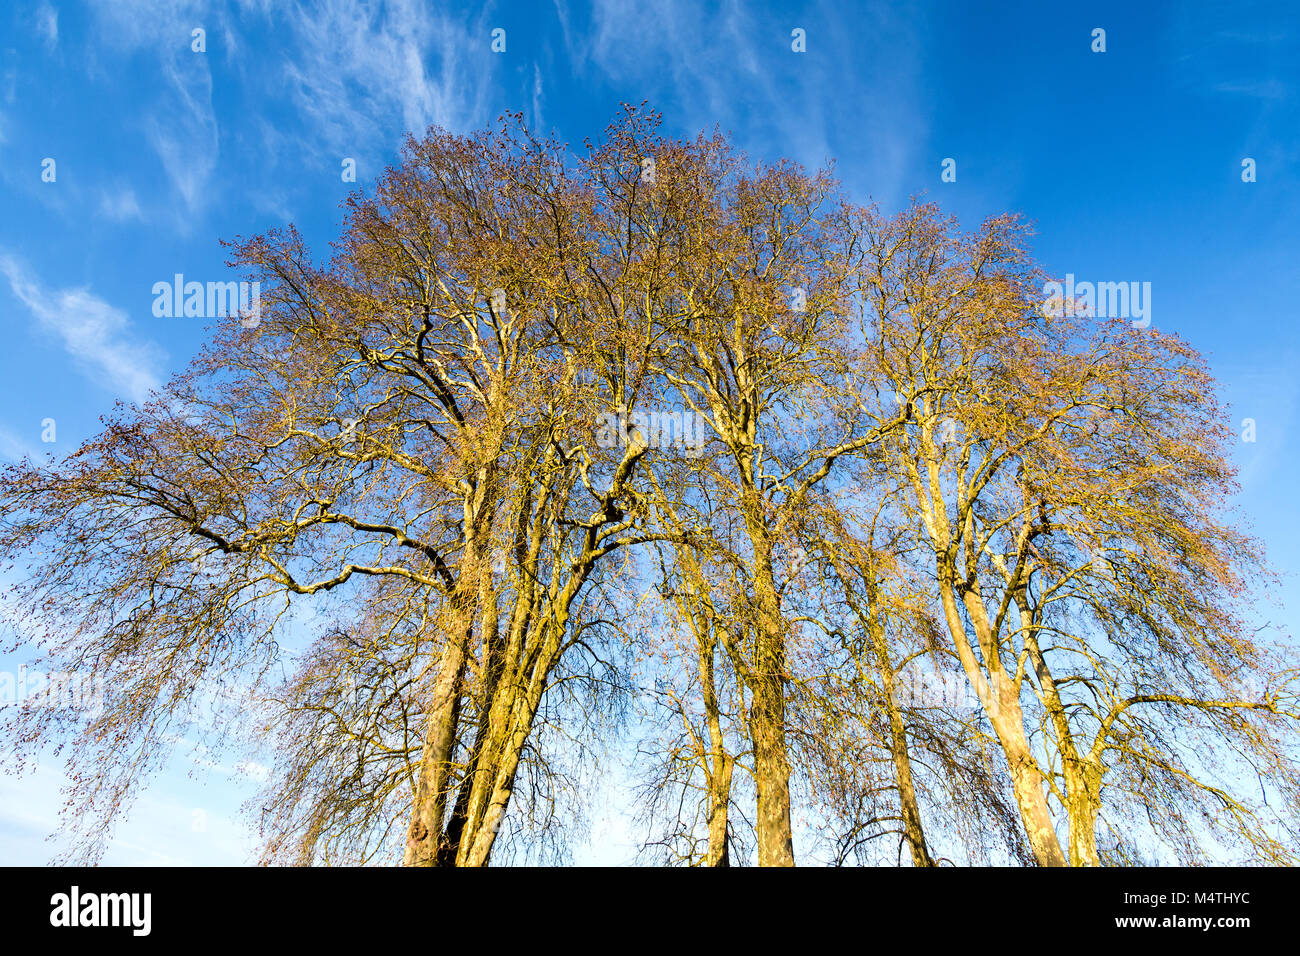 Group of tall Plane Platanus trees in Winter - France. - Stock Image